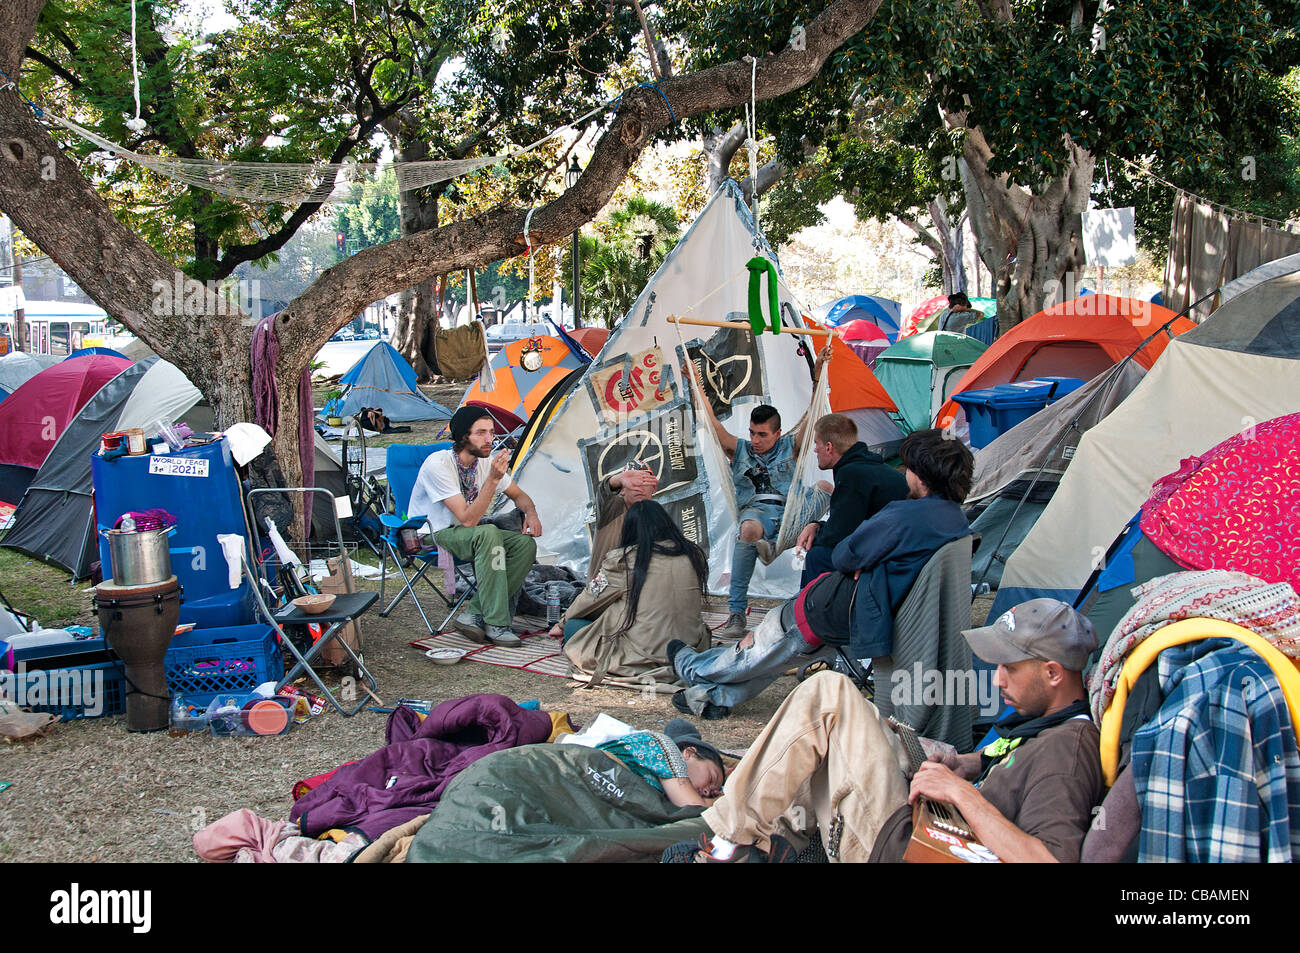 Tent City California High Resolution Stock Photography and Images - Alamy